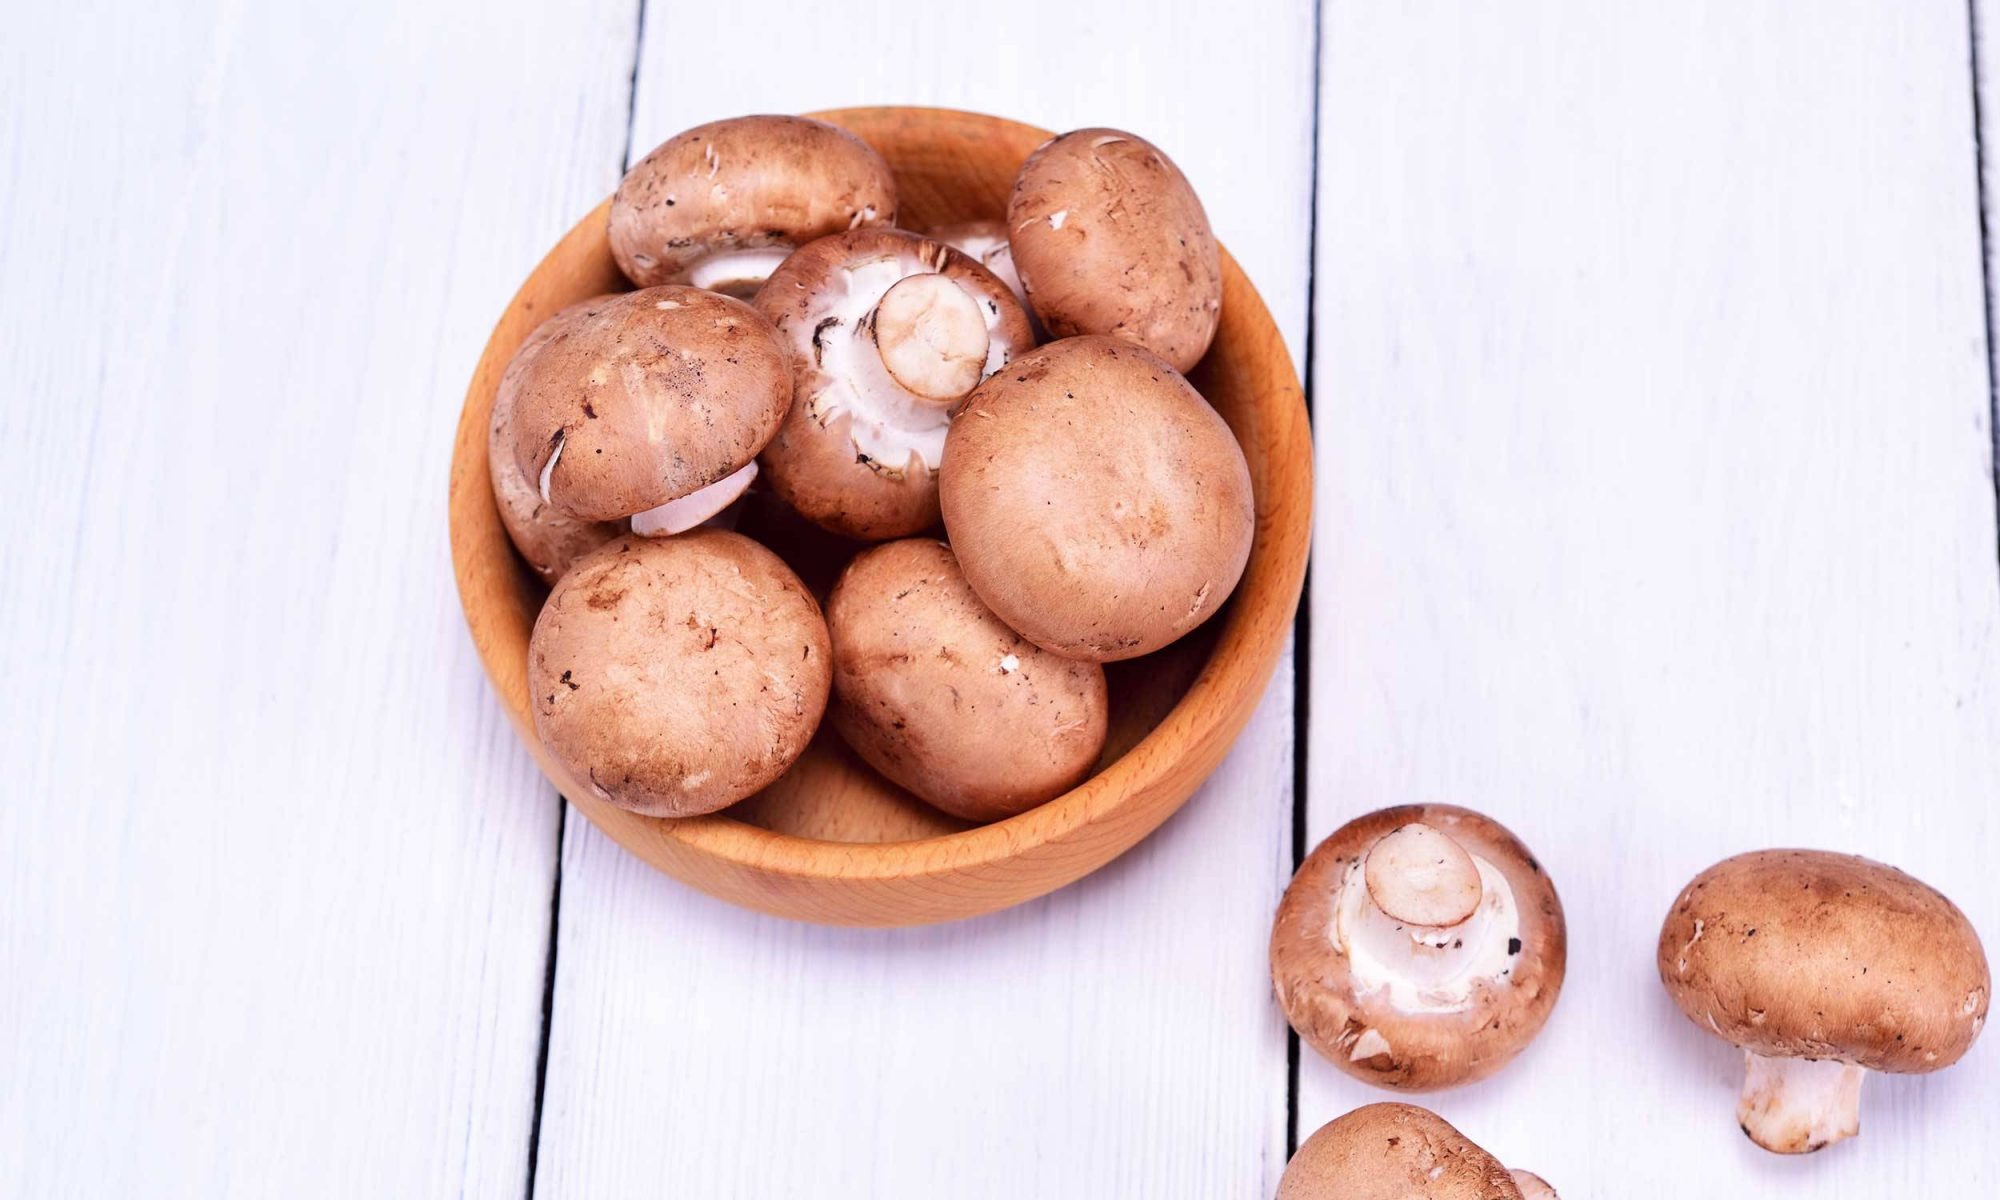 EC: How to Keep Mushrooms Fresh So They Don't Get Slimy